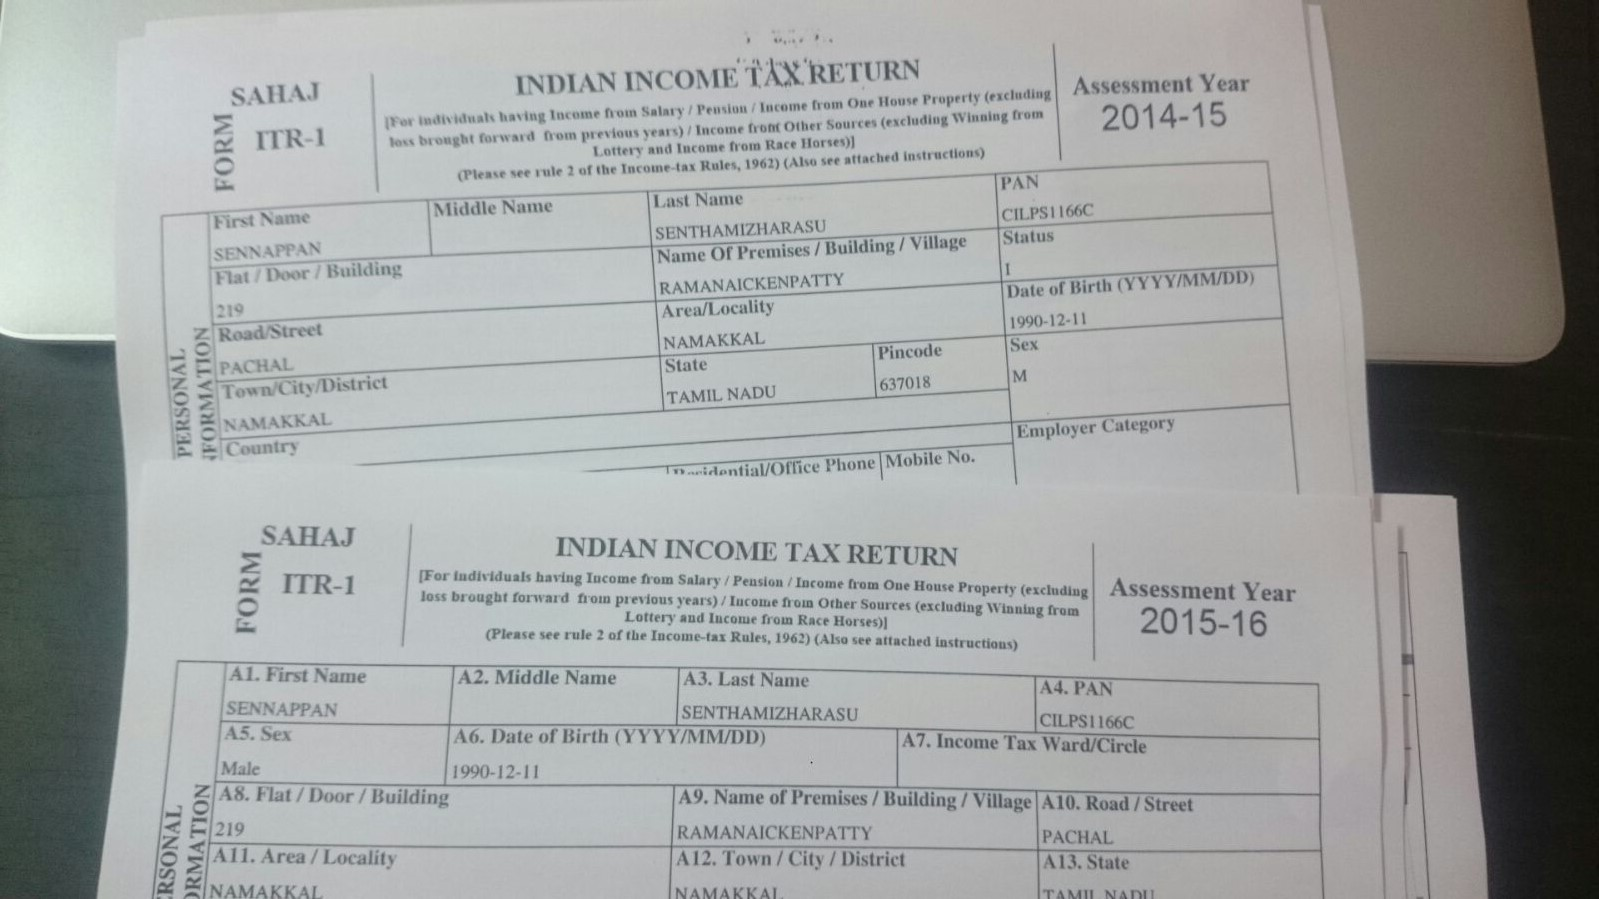 As a citizen of india, I paid my Income Tax returns for 2013-2014,and 2014-2015, Be proud to be the part of developing india